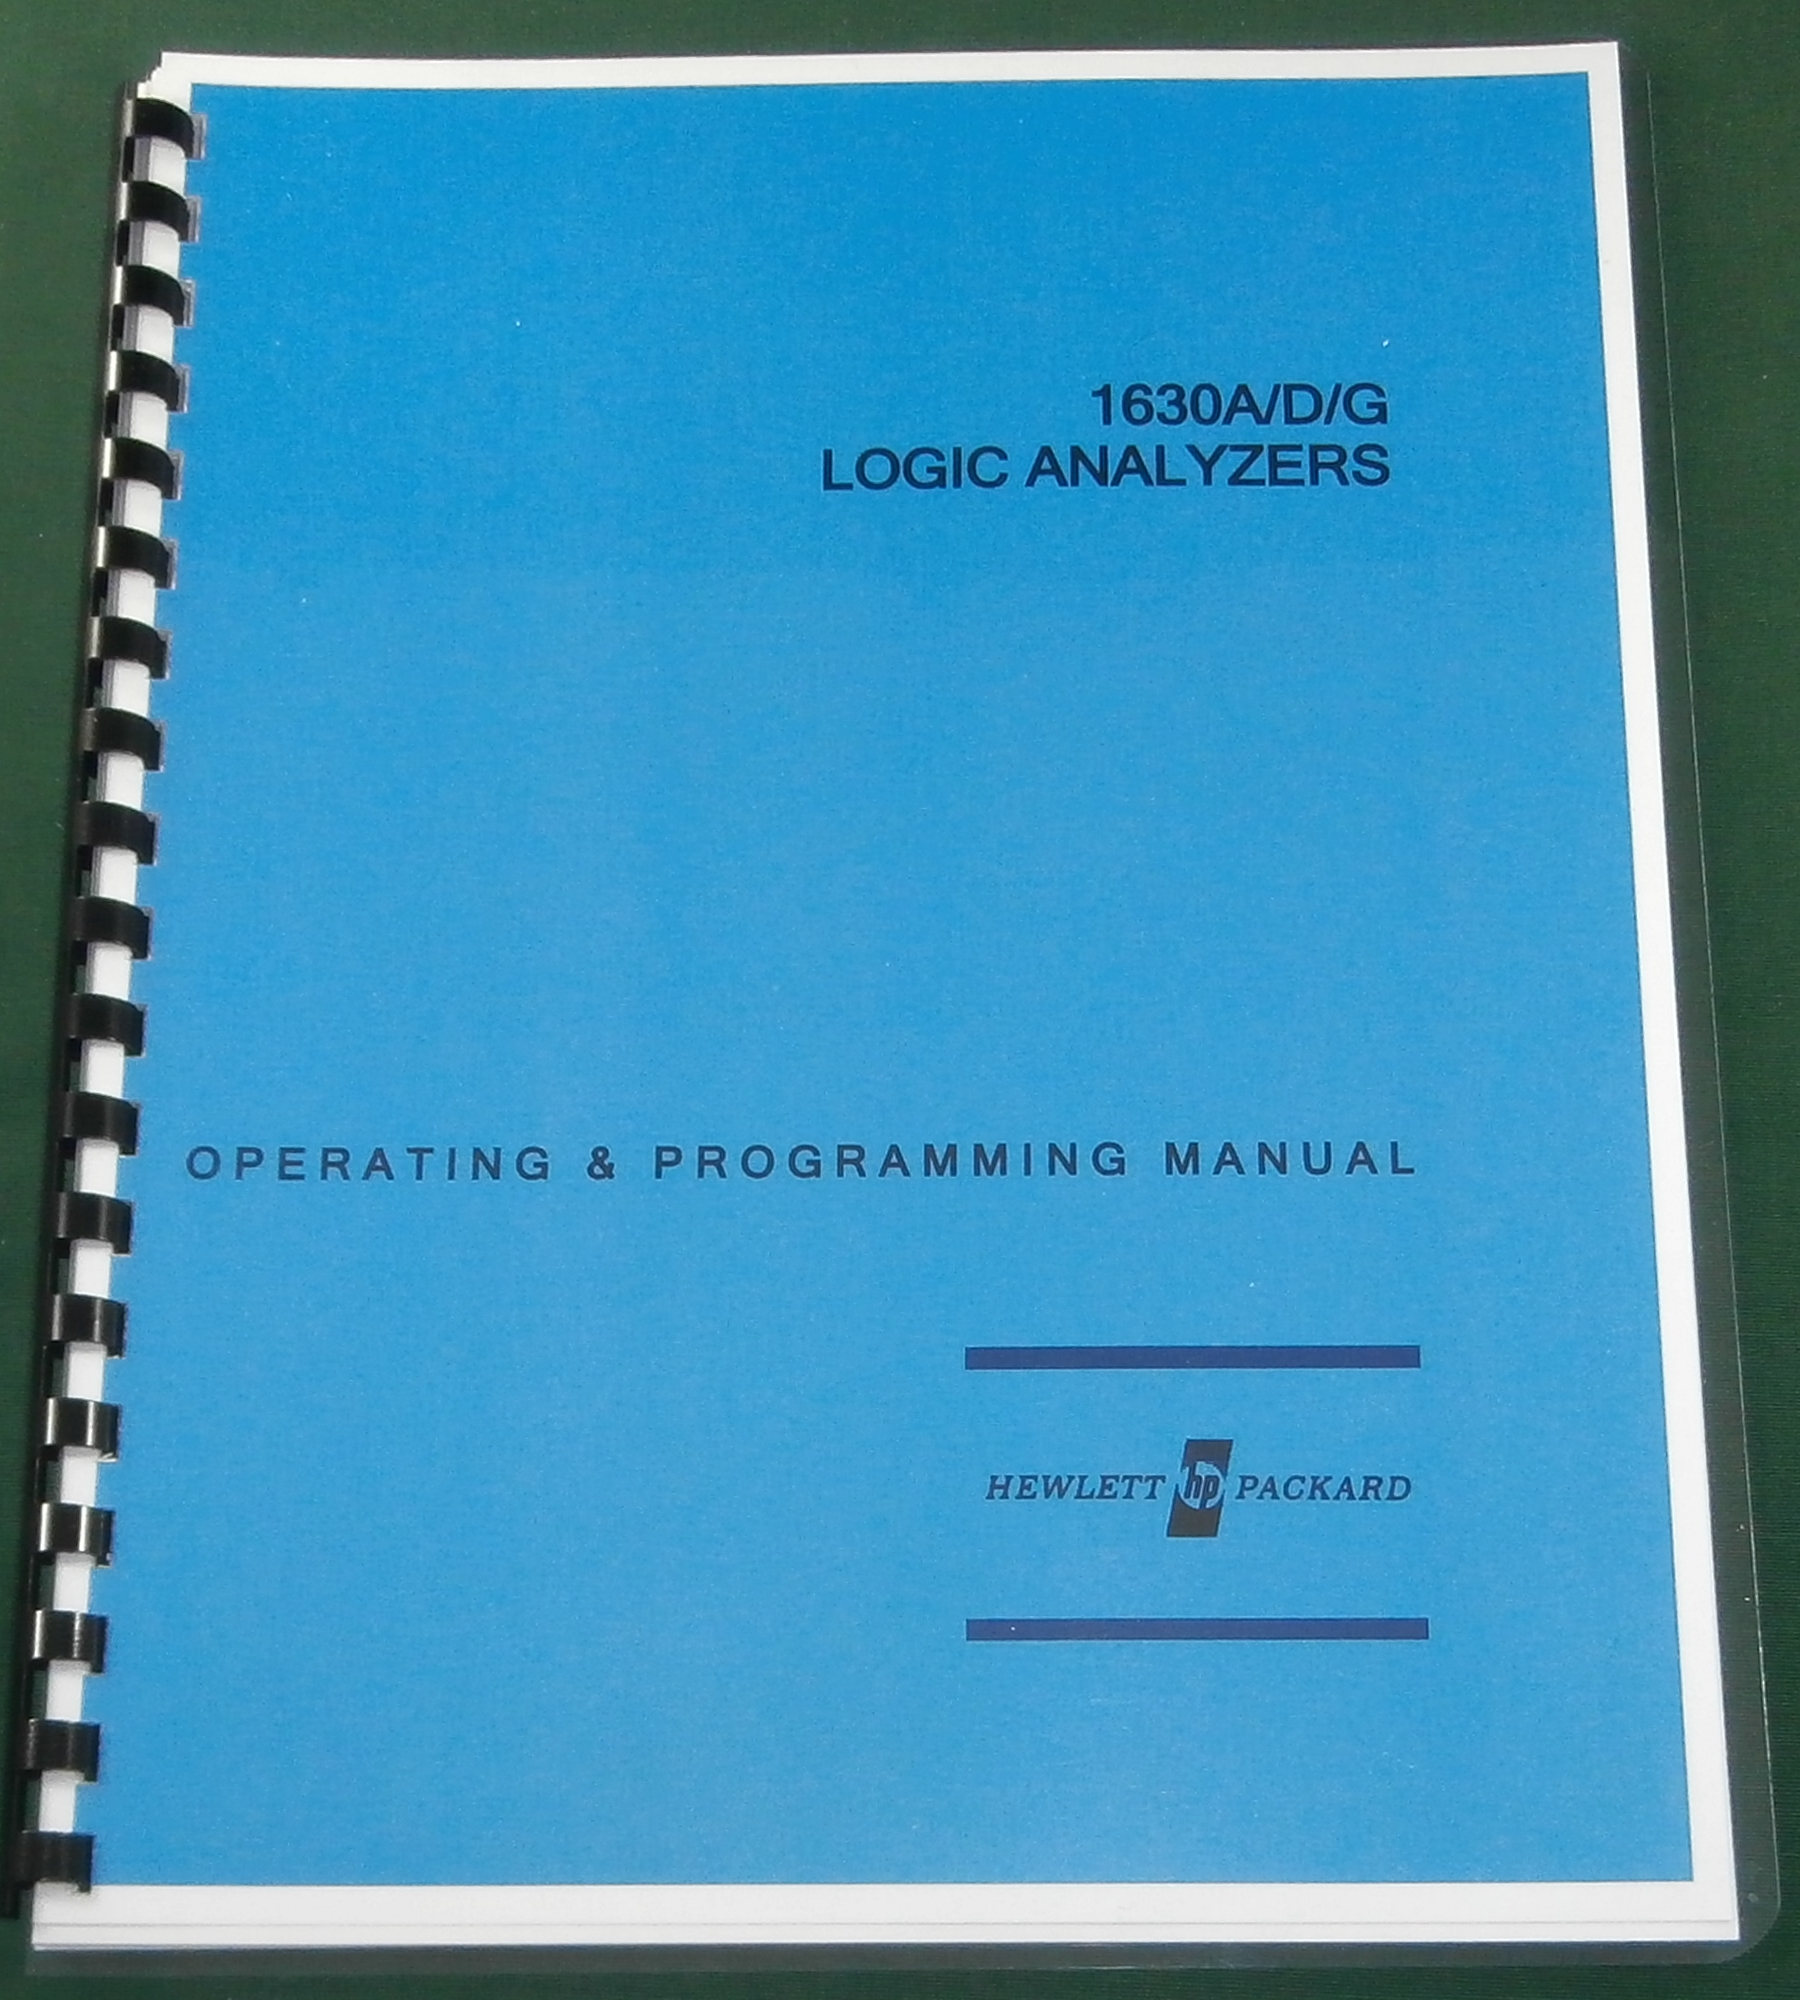 HP 1630A/D/G Operating & Programming Manual